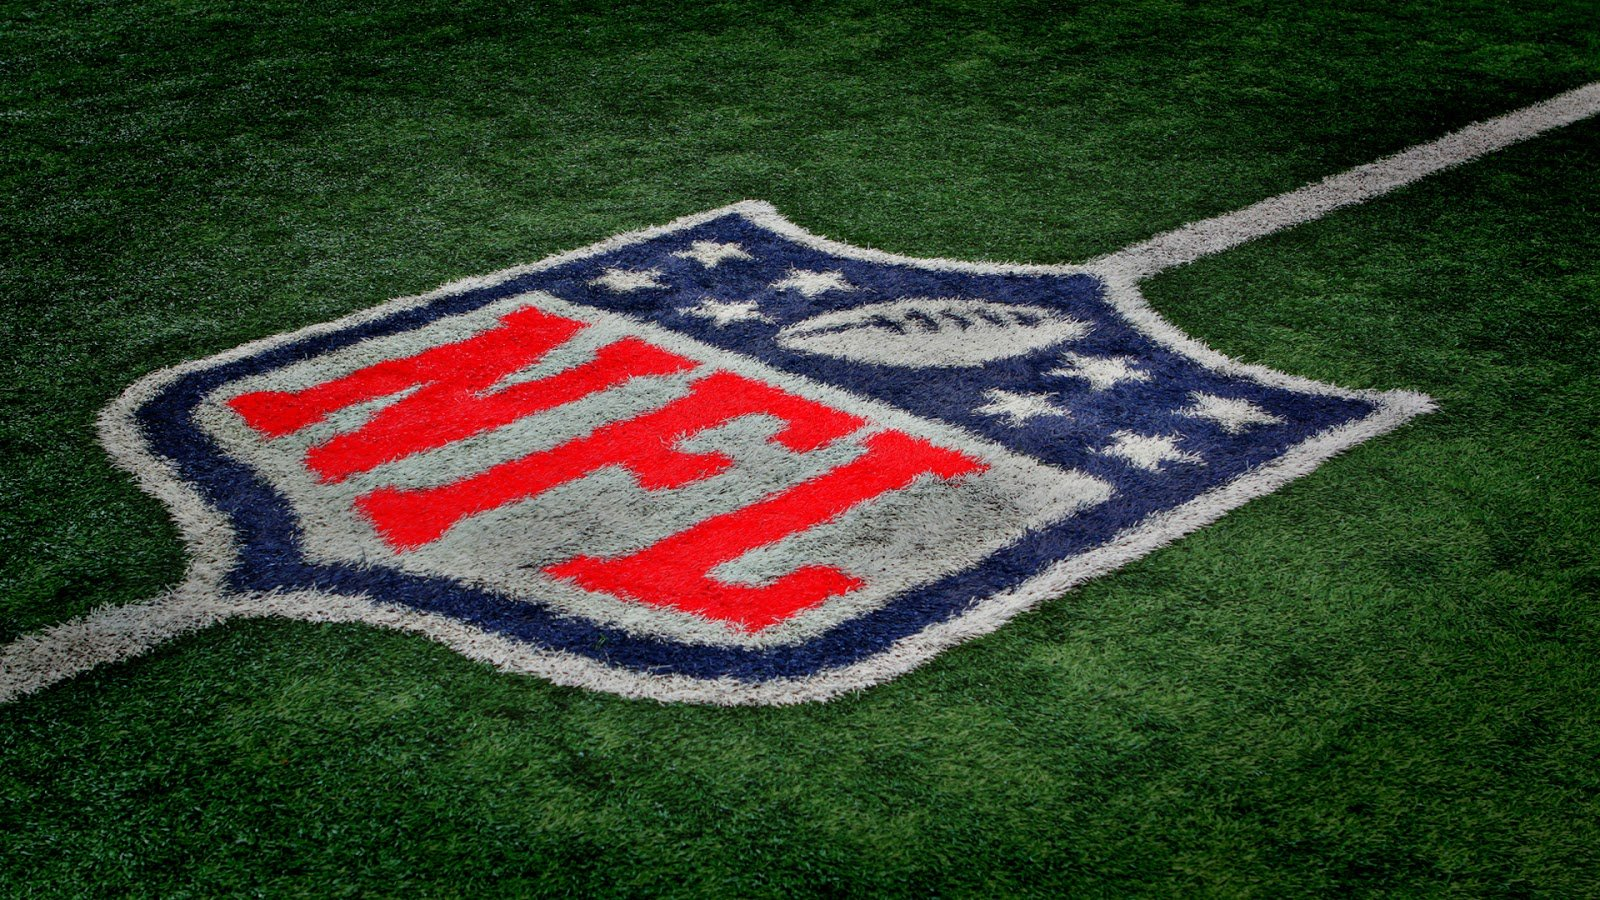 Nfl Football Wallpaper hd images 1600x900